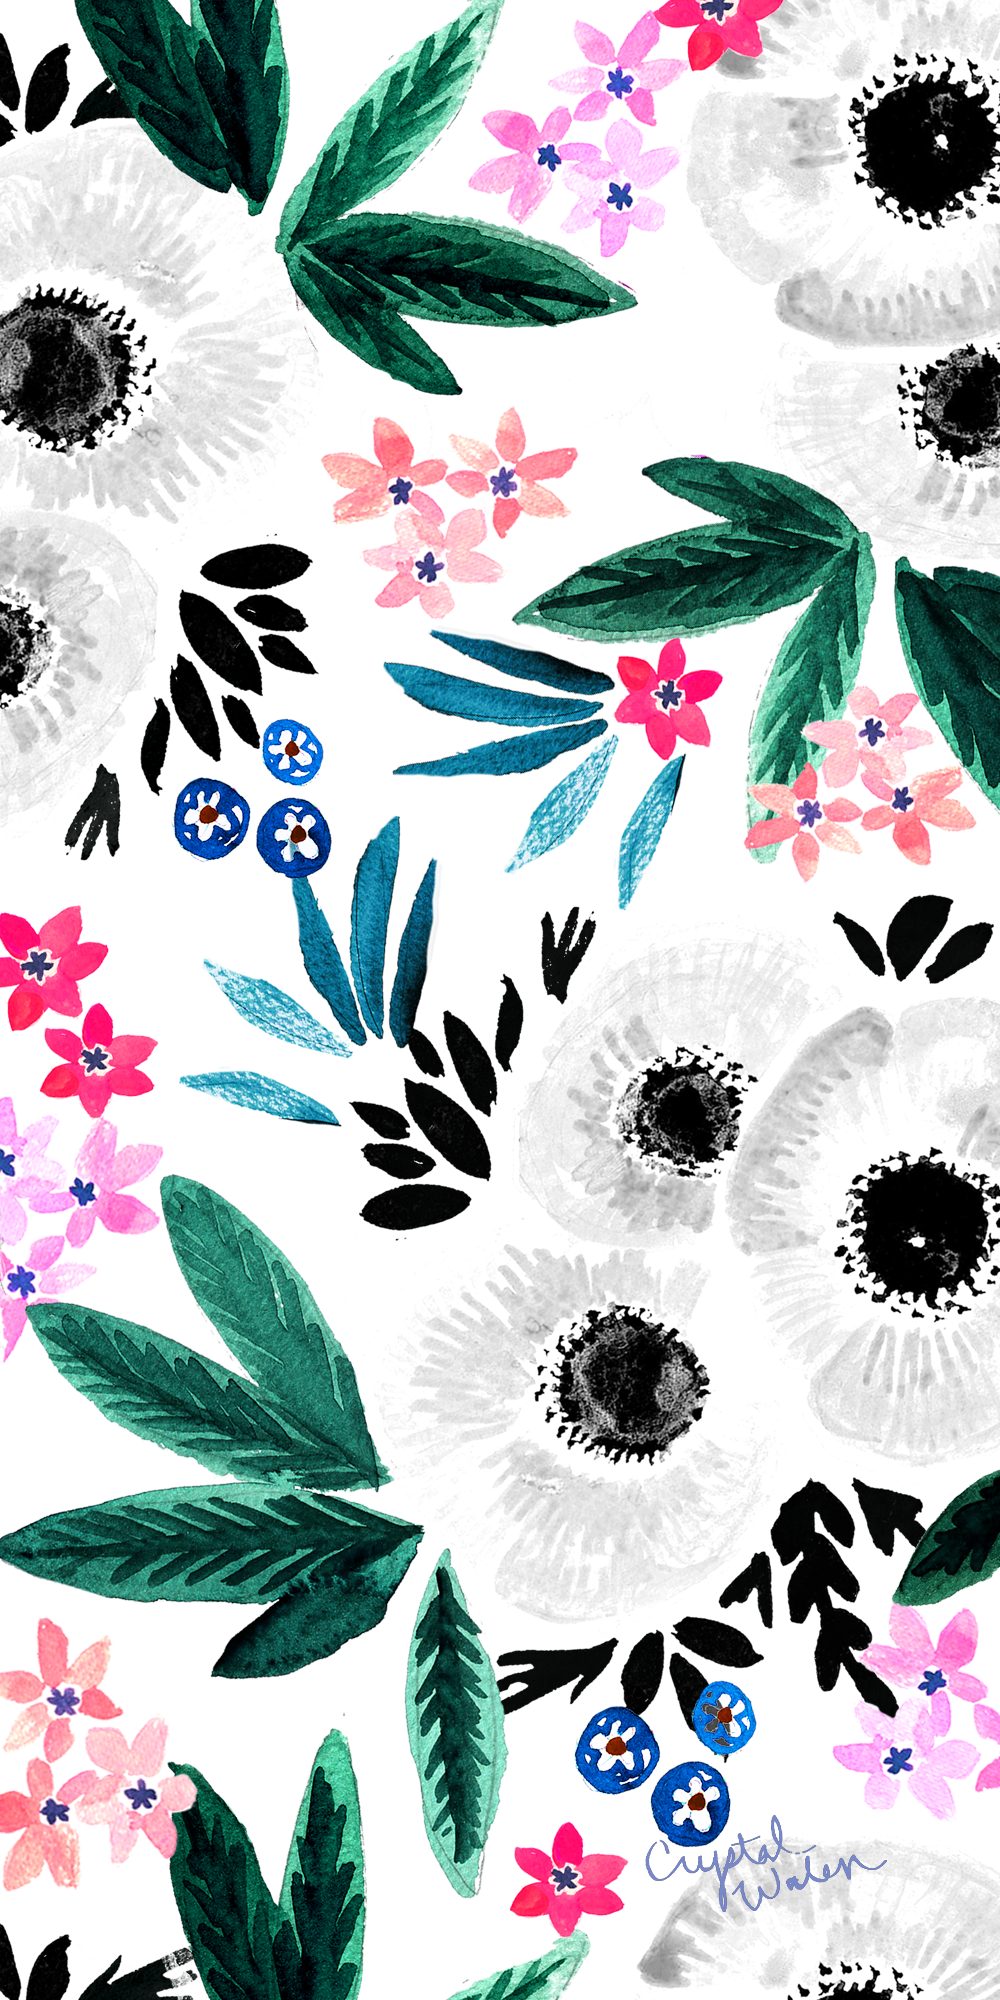 Floral Wallpaper Casetify Iphone Art Design Flowers New Wallpaper Iphone Flower Wallpaper Floral Wallpaper